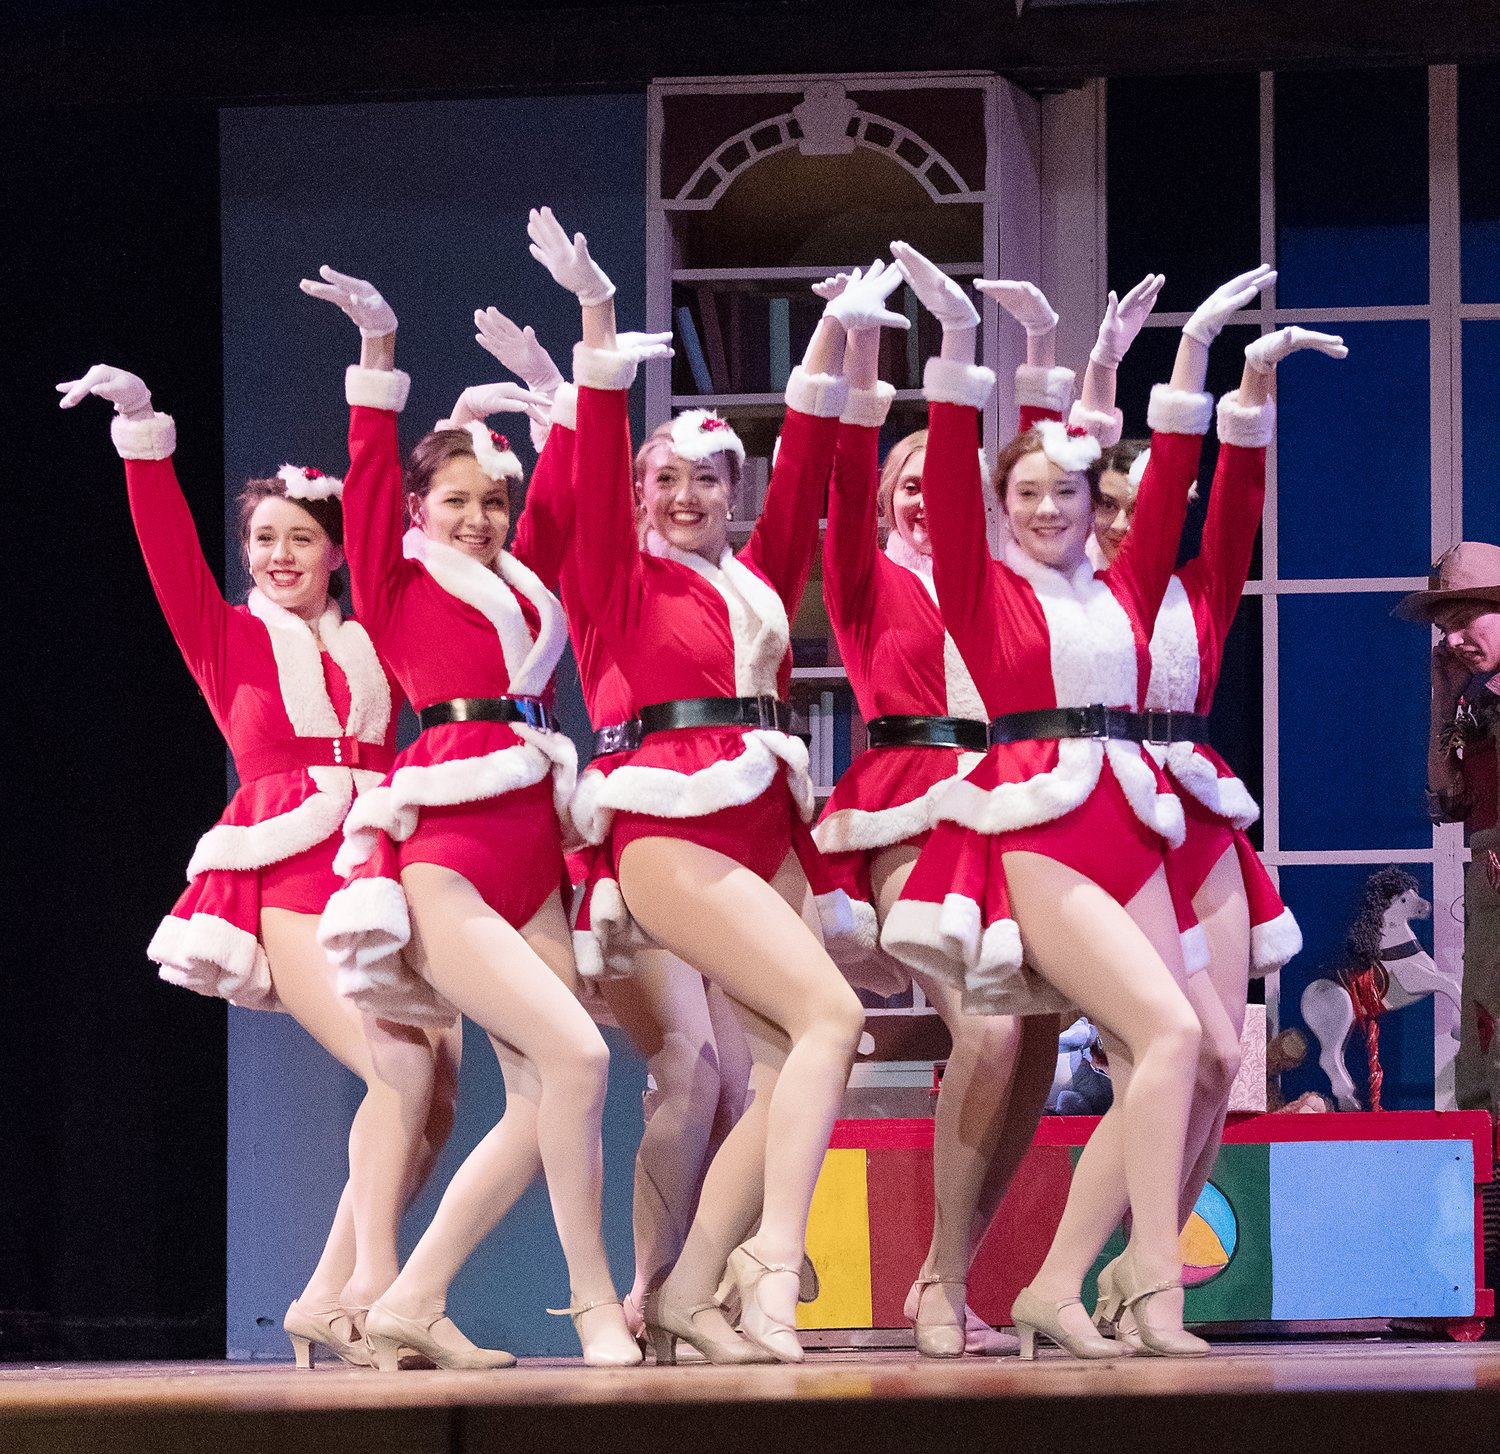 "The Talent Machine Company's annual holiday show – this year titled ""Holiday Cheer 2018"" – features the talents of young performers from across the region in a lineup of both classic and nontraditional seasonal songs."